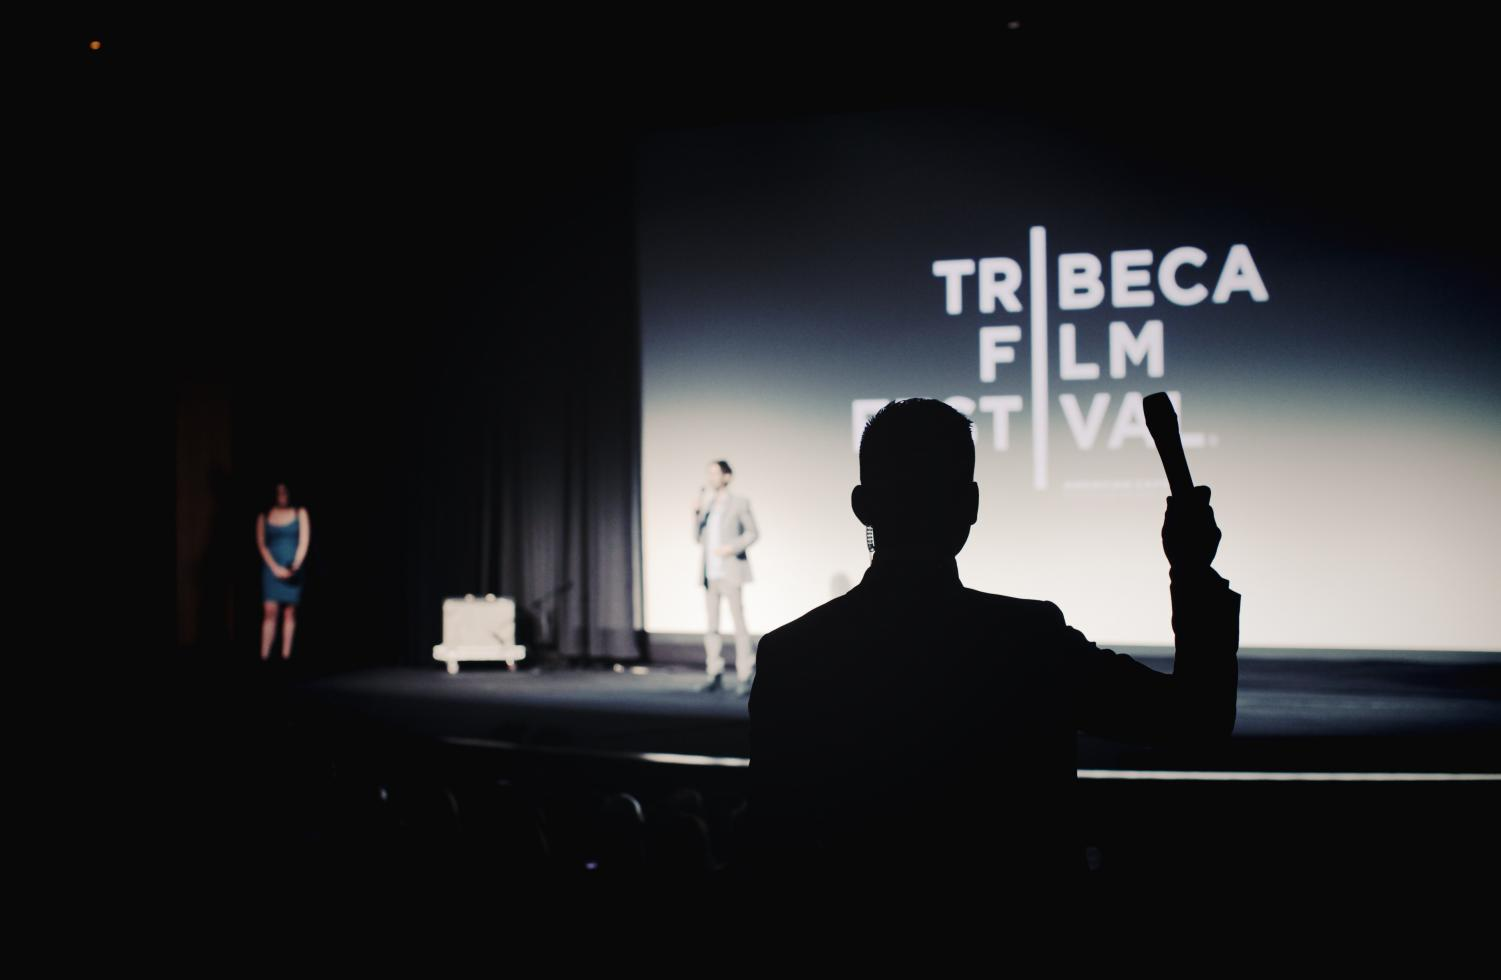 Phillip Youmans won this year's Tribeca Film Festival narrative competition at 19, making him the youngest ever to do so.